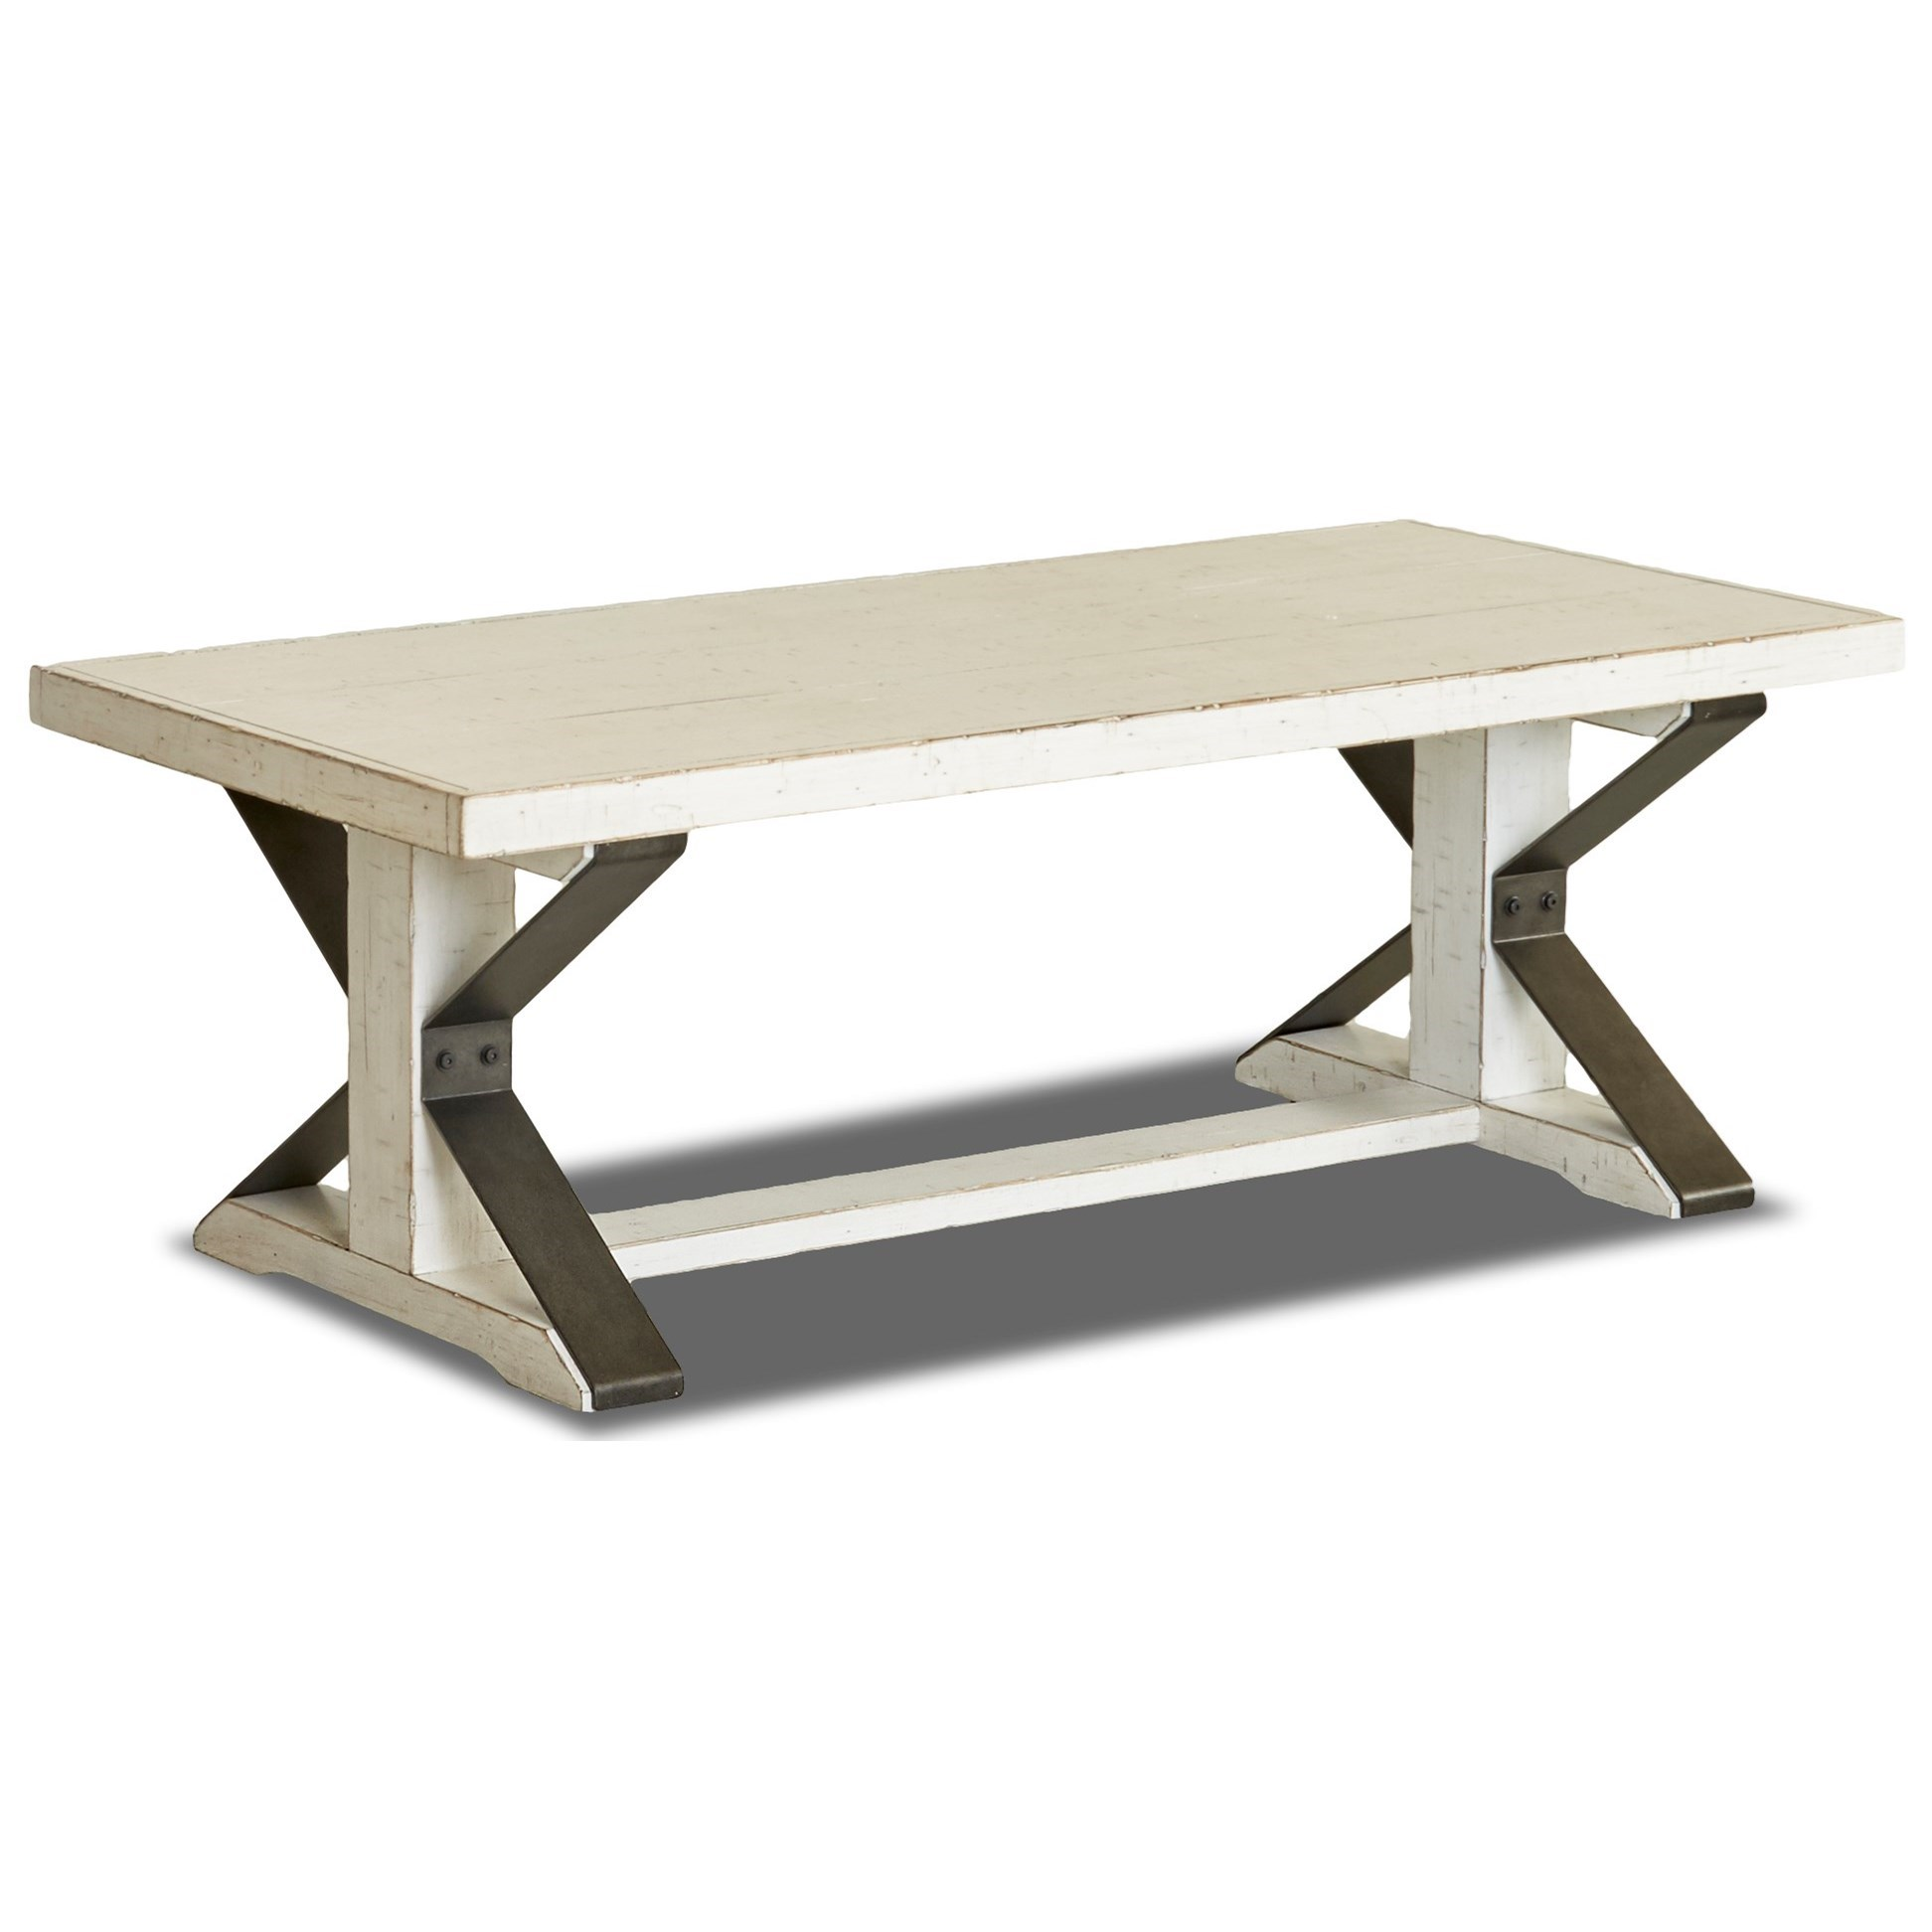 Coming Home Friendship Cocktail Table by Trisha Yearwood Home Collection by Klaussner at Johnny Janosik